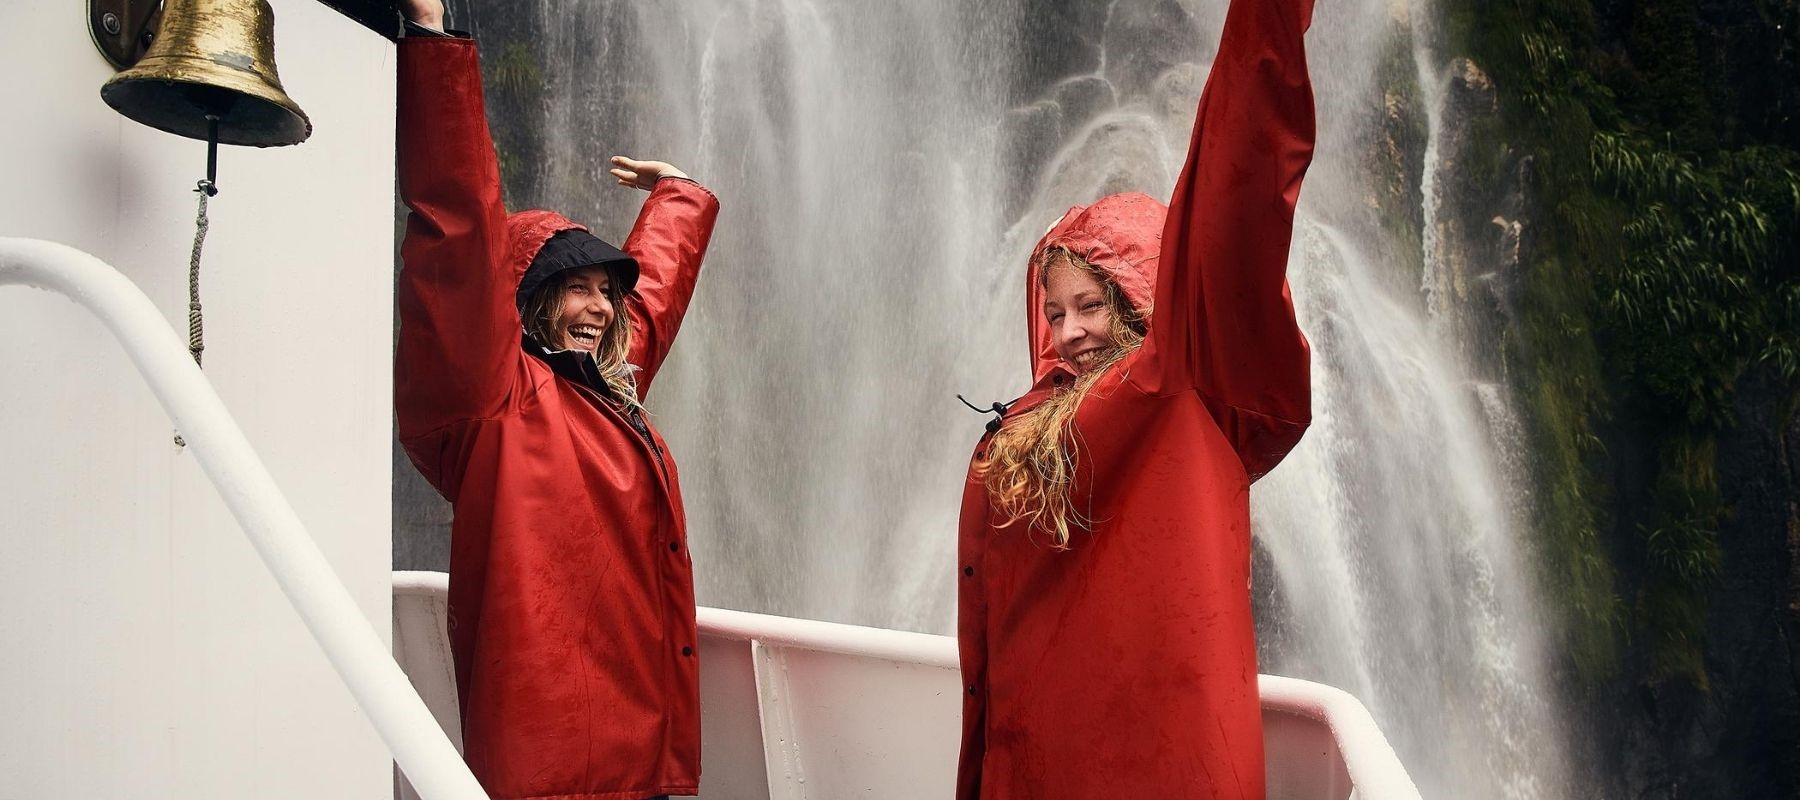 Two women enjoy waterfall spray from a Southern Discoveries boat tour from Milford Sound Lodge.